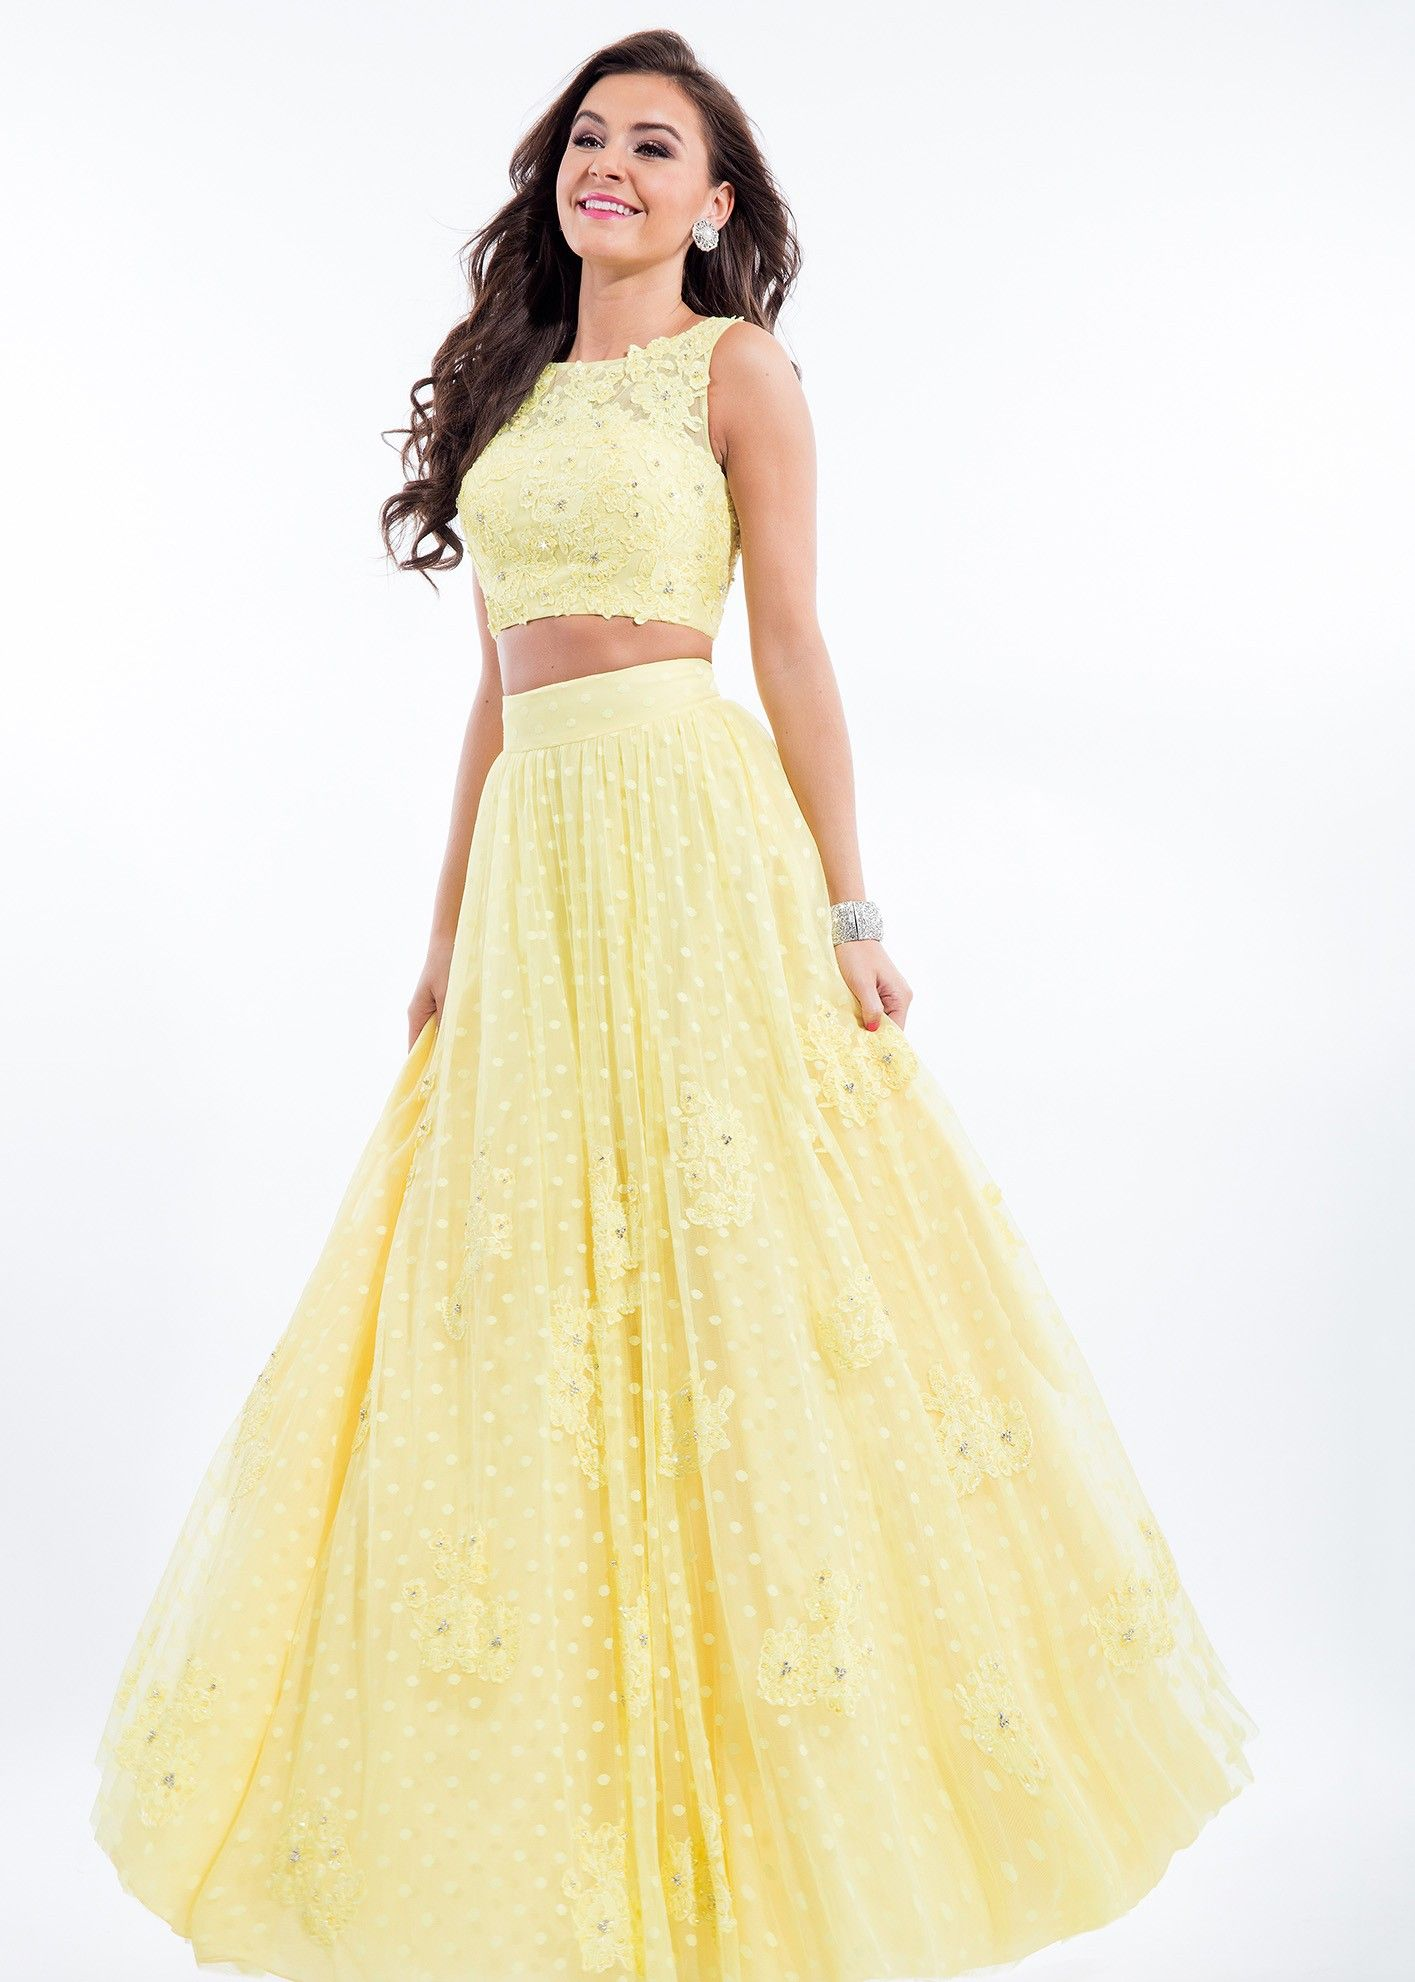 42a9043f82b Rachel Allan 7113 Yellow Sleeveless Two Piece Illusion Gown